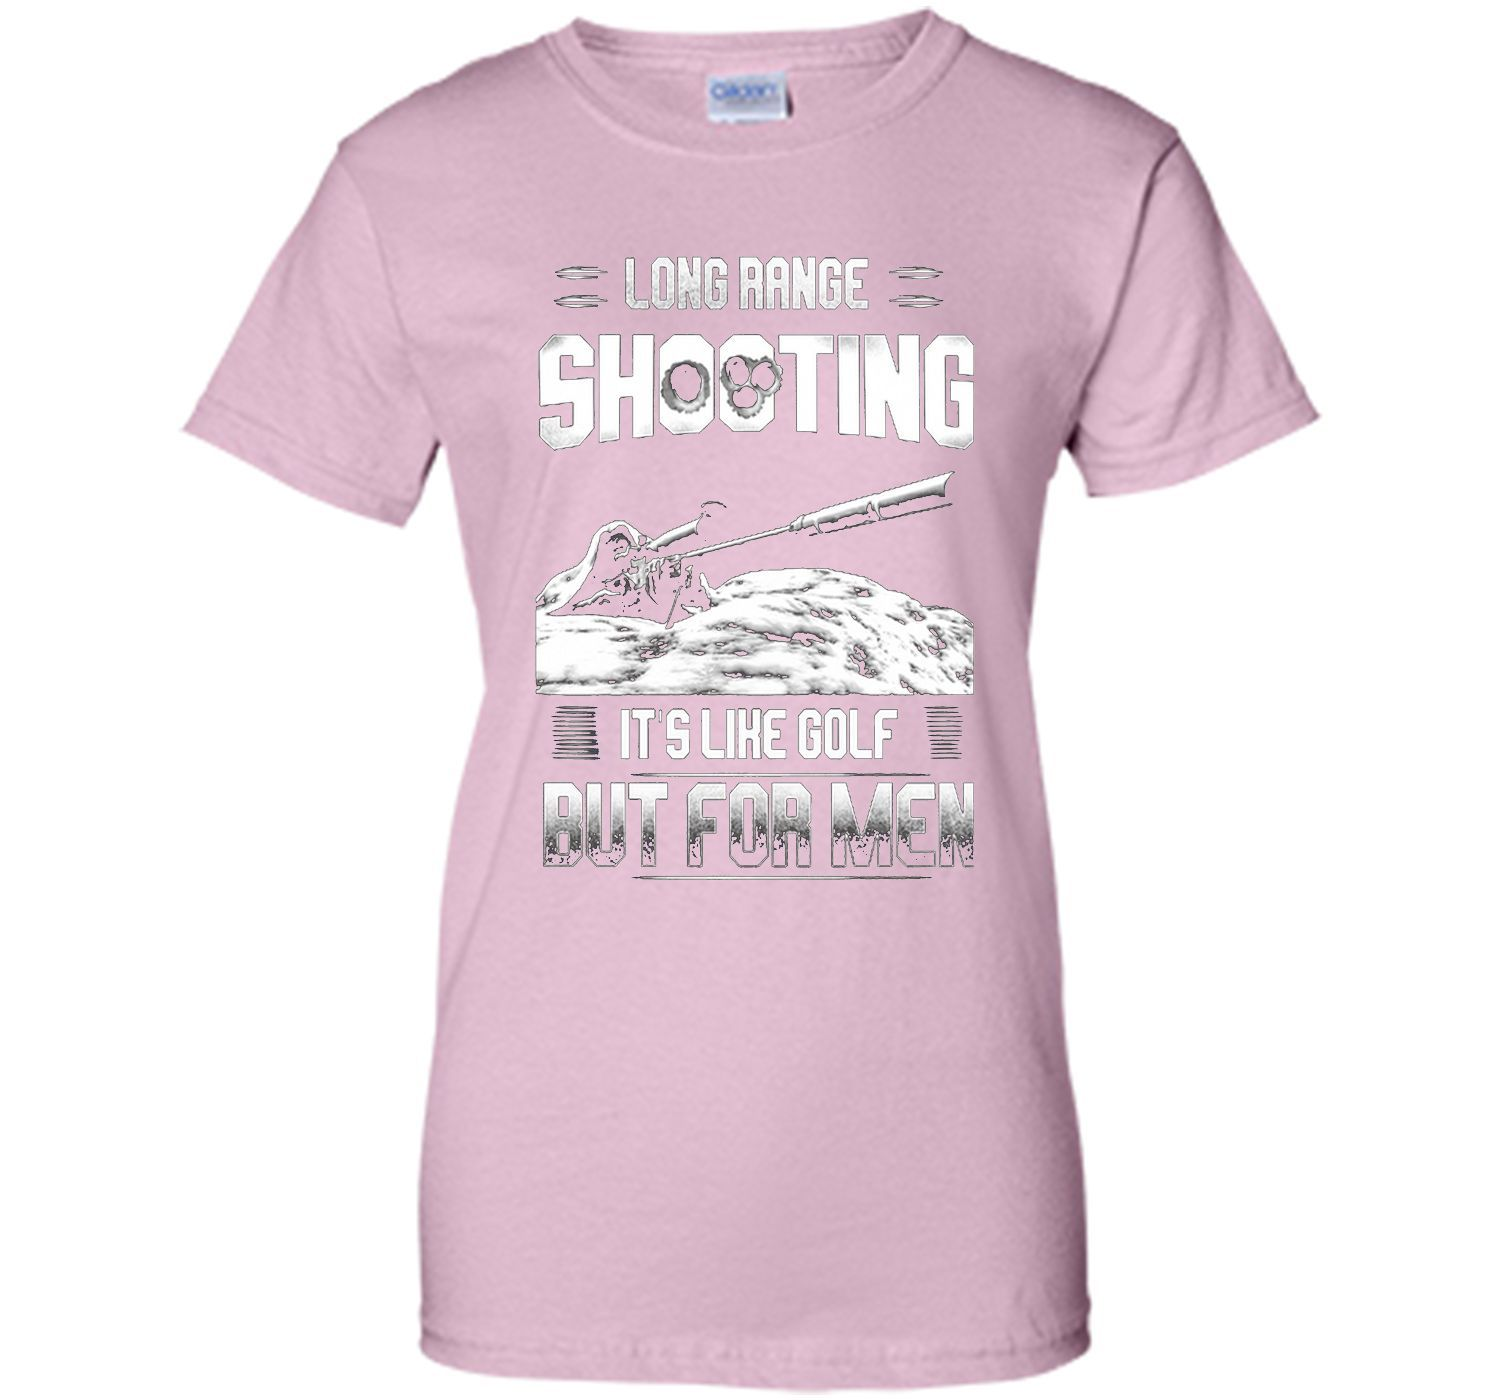 3ecf83043 Long range shooting it's like golf but for men | Products | Unisex ...